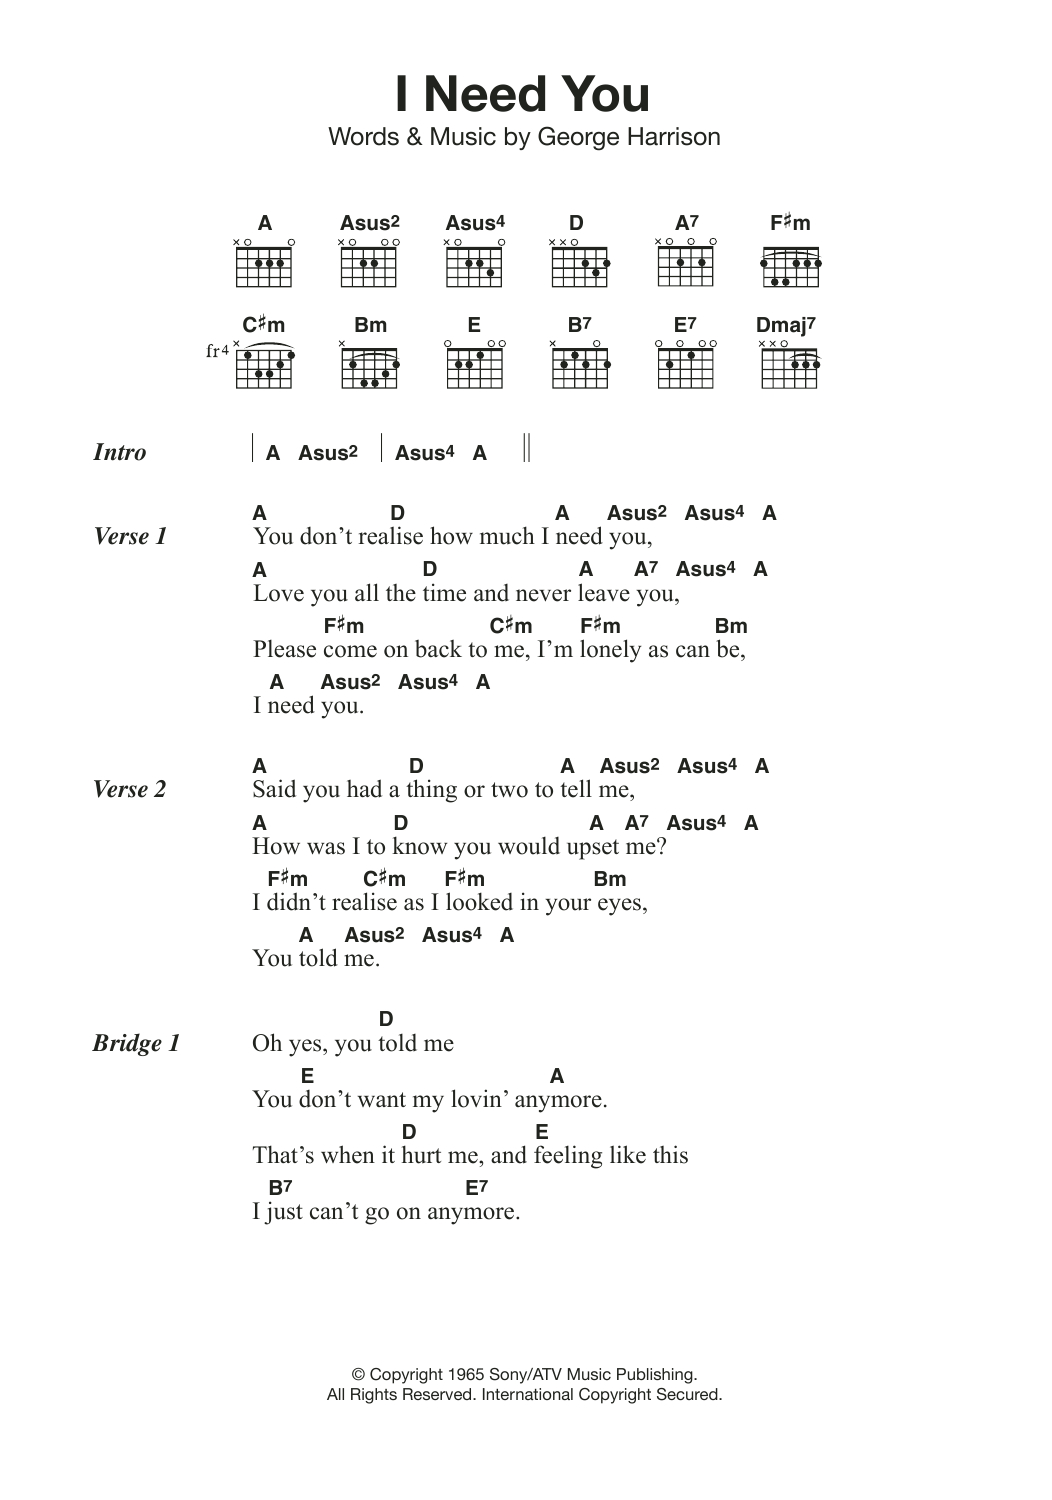 Lord I Need You Chords I Need You The Beatles Piano Vocal Guitar Right Hand Melody Digital Sheet Music